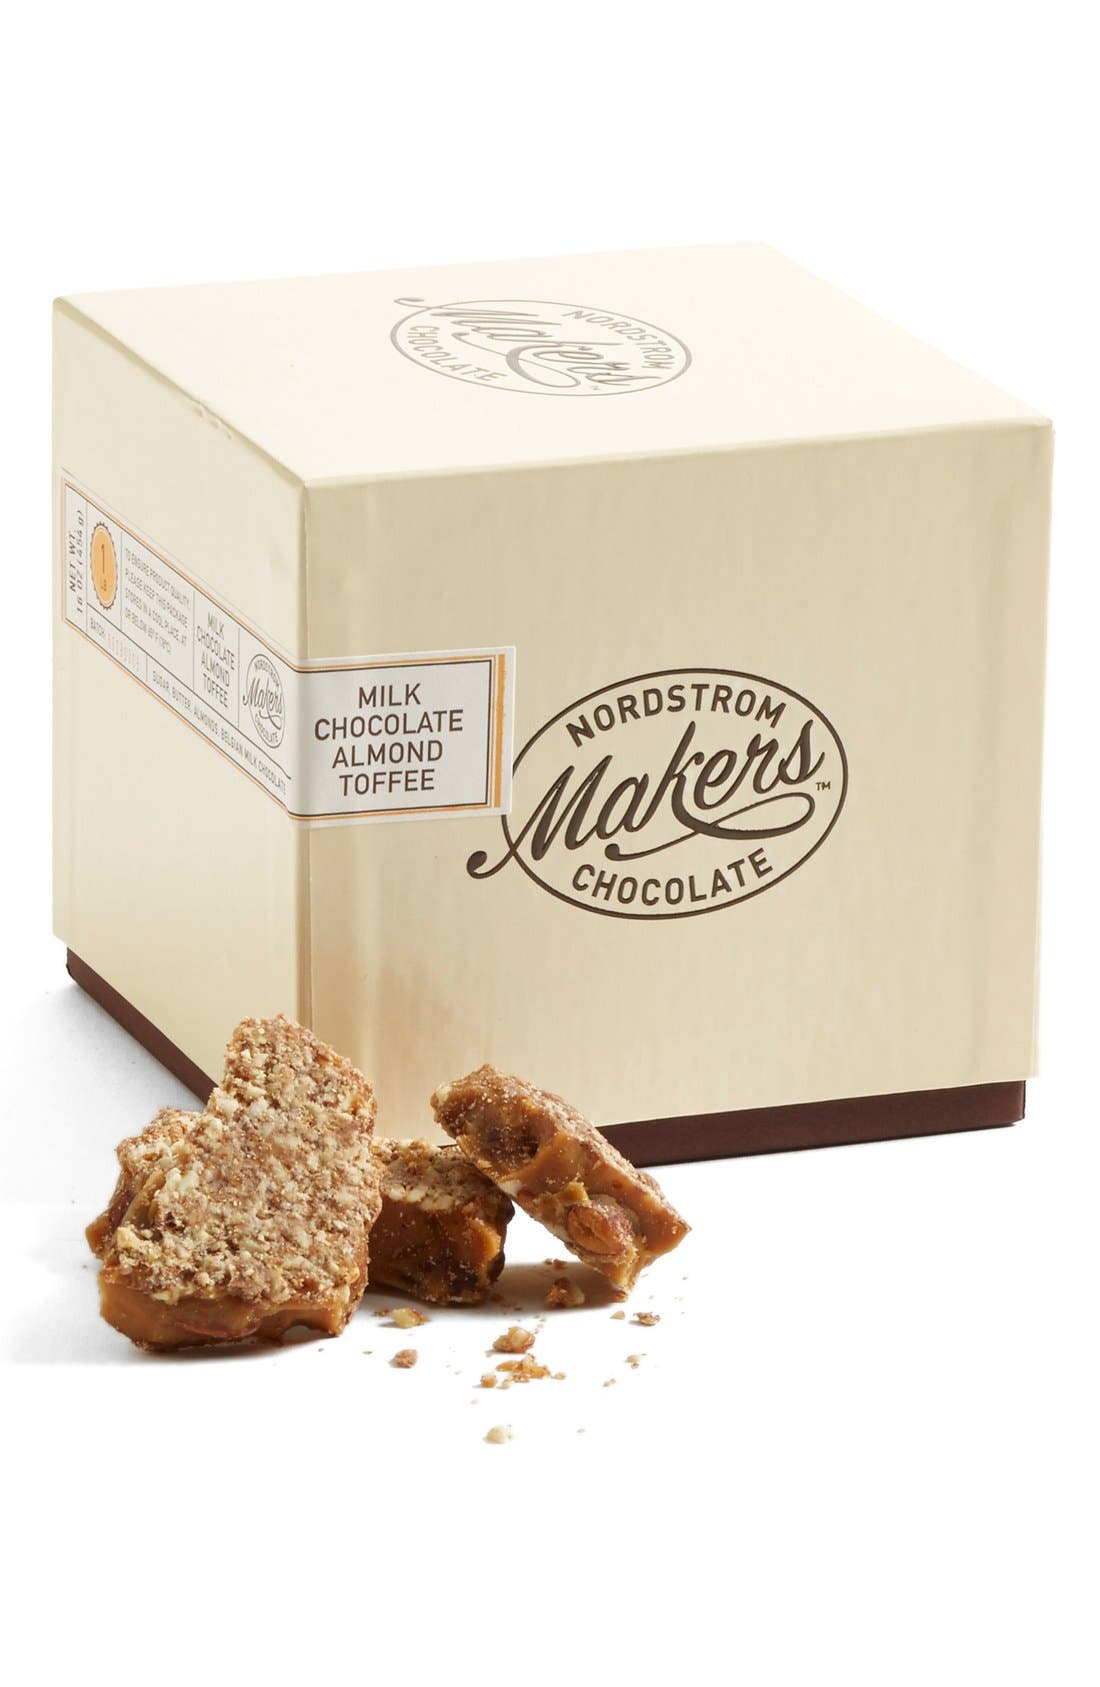 Main Image - Nordstrom Makers Chocolate Milk Chocolate Almond Toffee